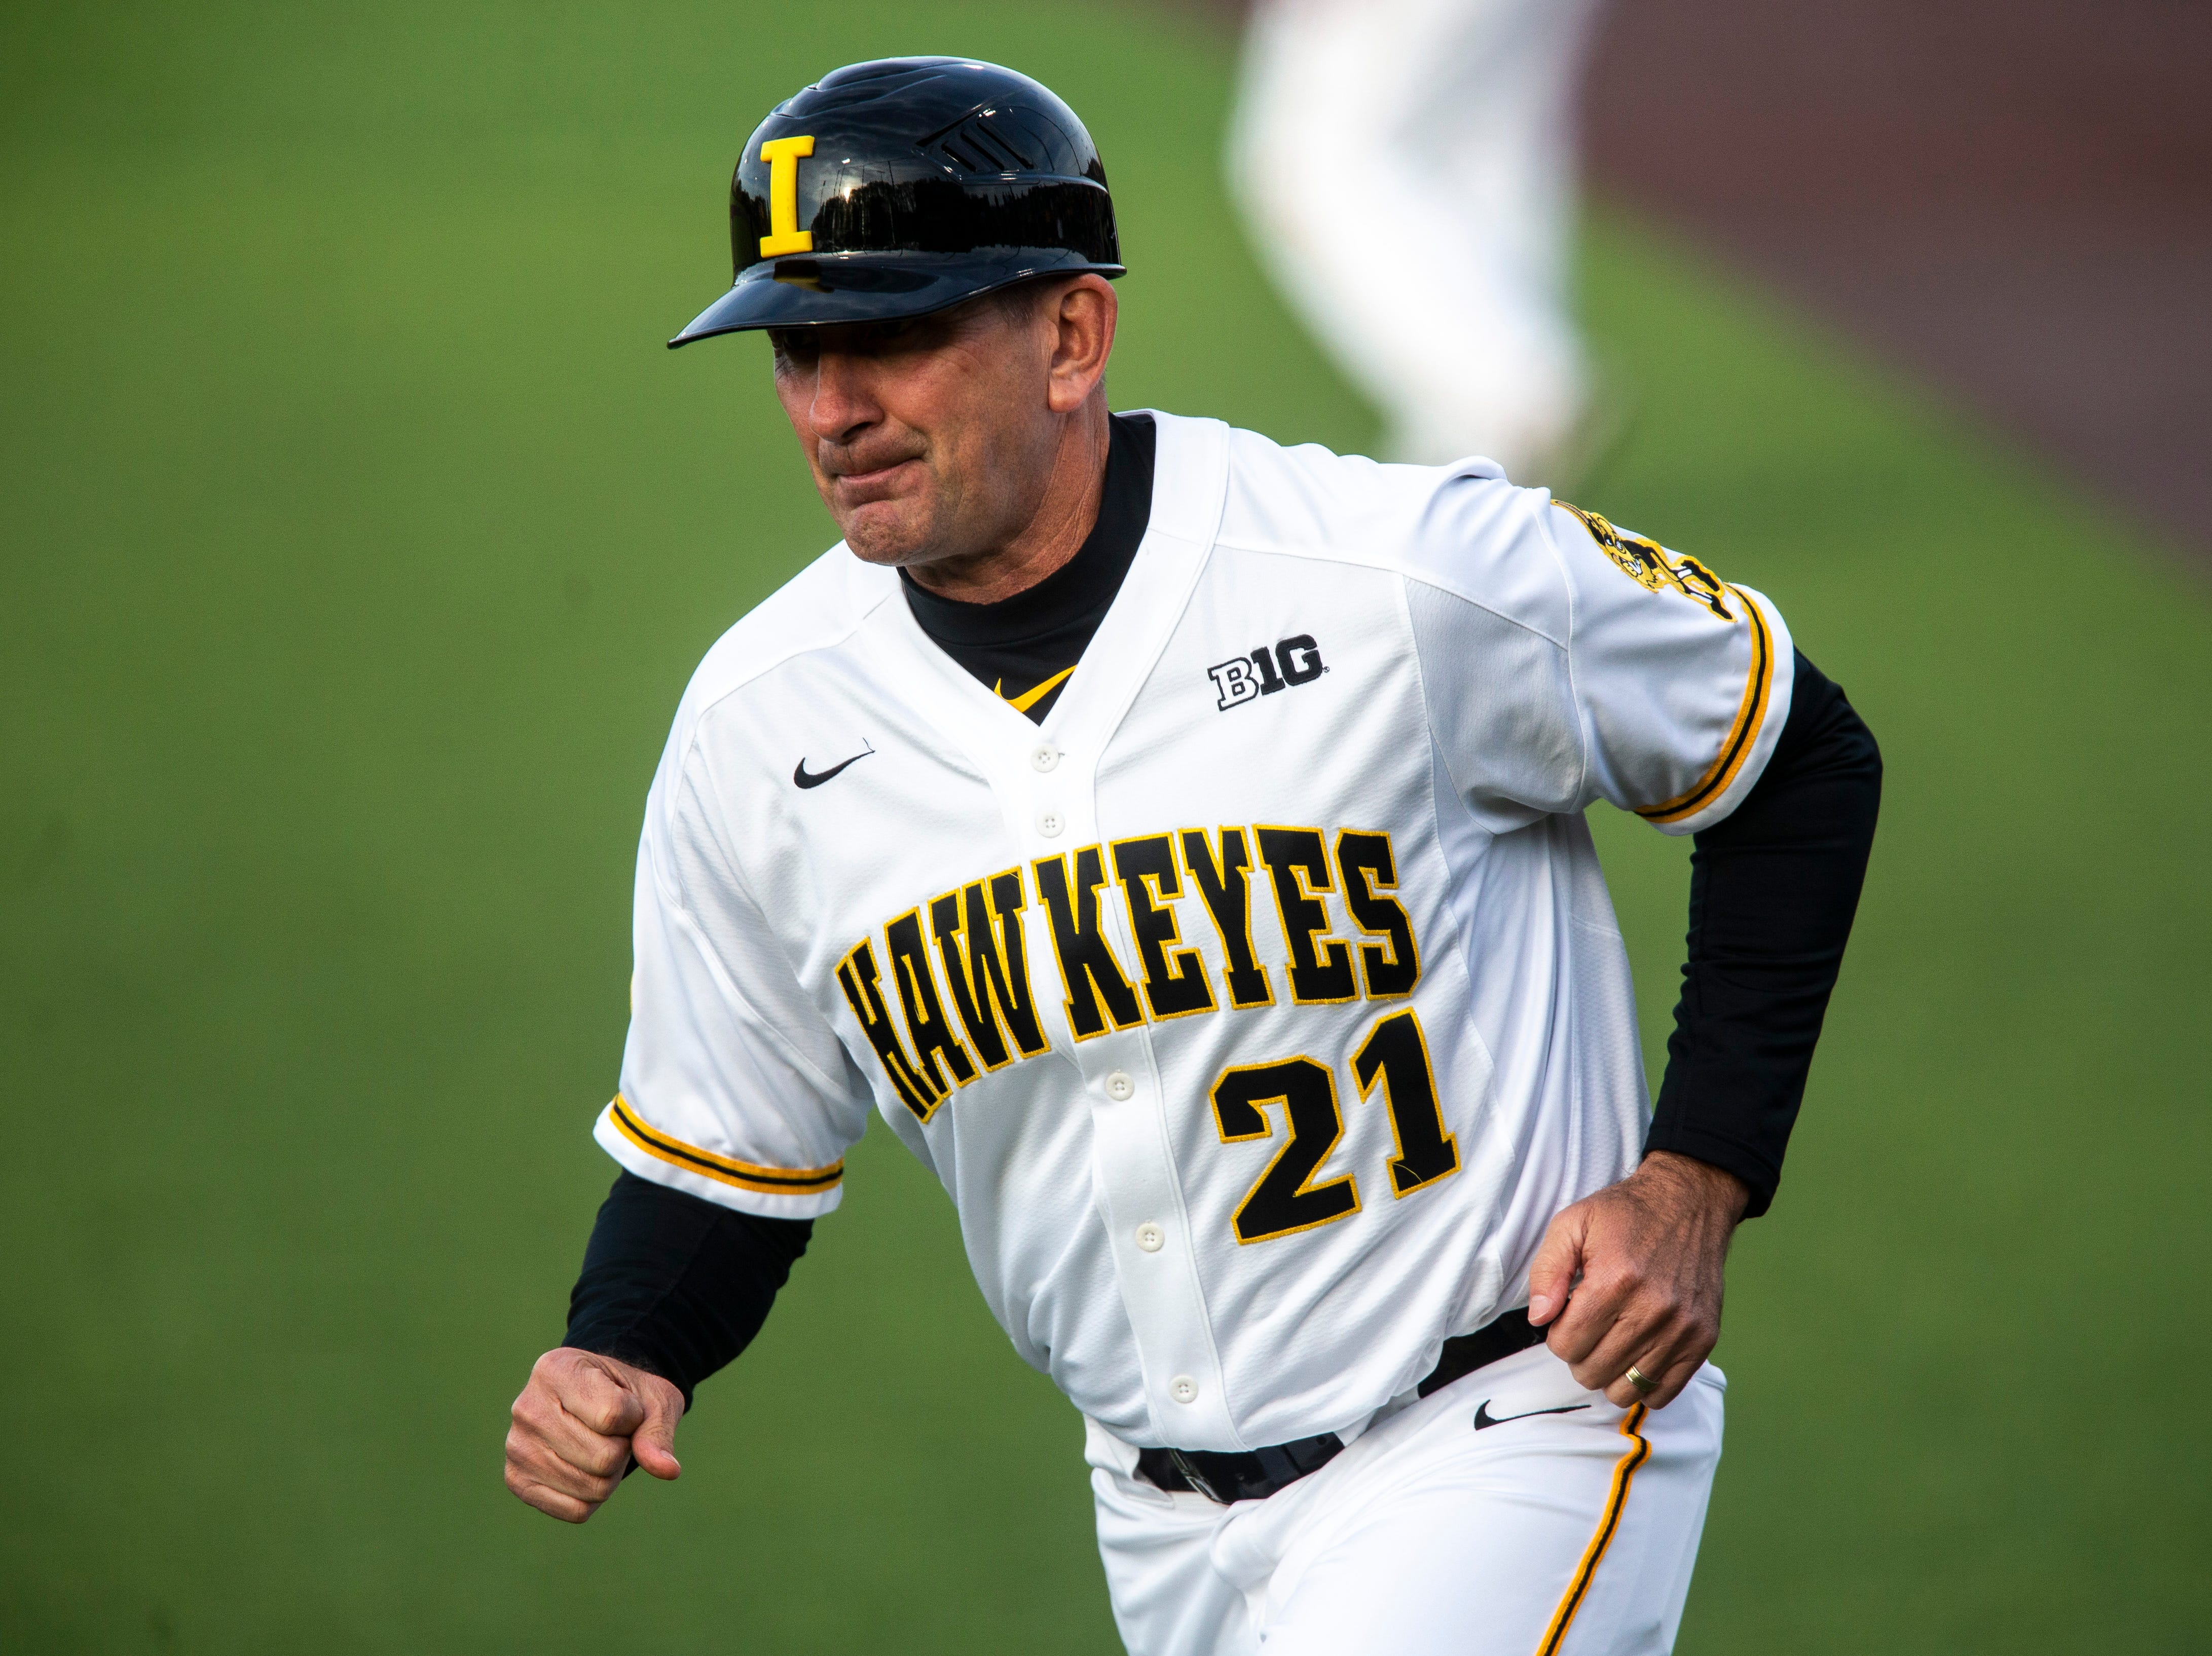 Iowa head coach Rick Heller runs out to the third baseline during NCAA non conference baseball game, Friday, May 3, 2019, at Duane Banks Field in Iowa City, Iowa.